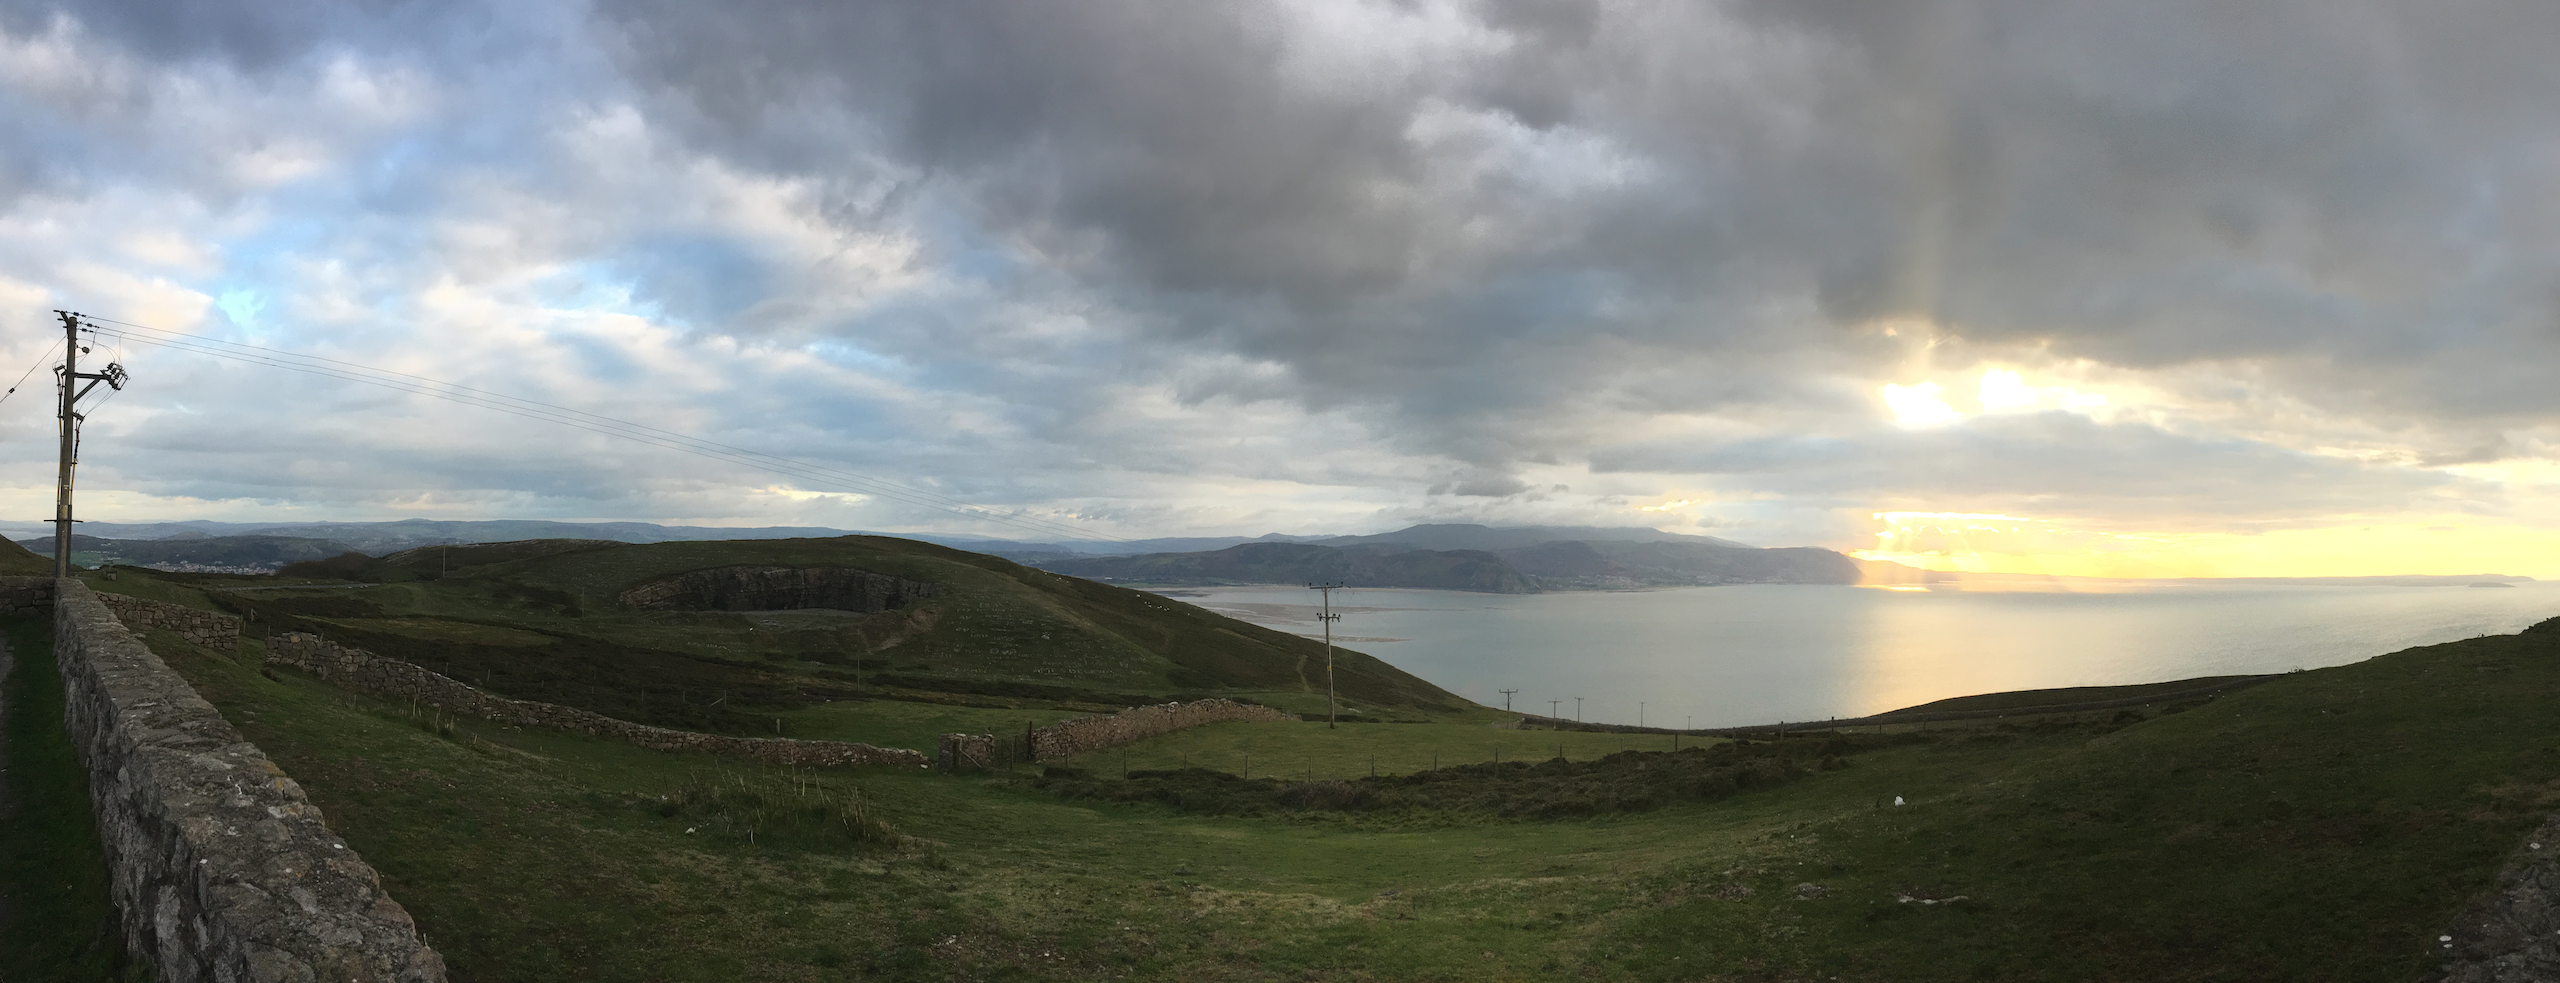 The view from Great Orme Head. Photo by author